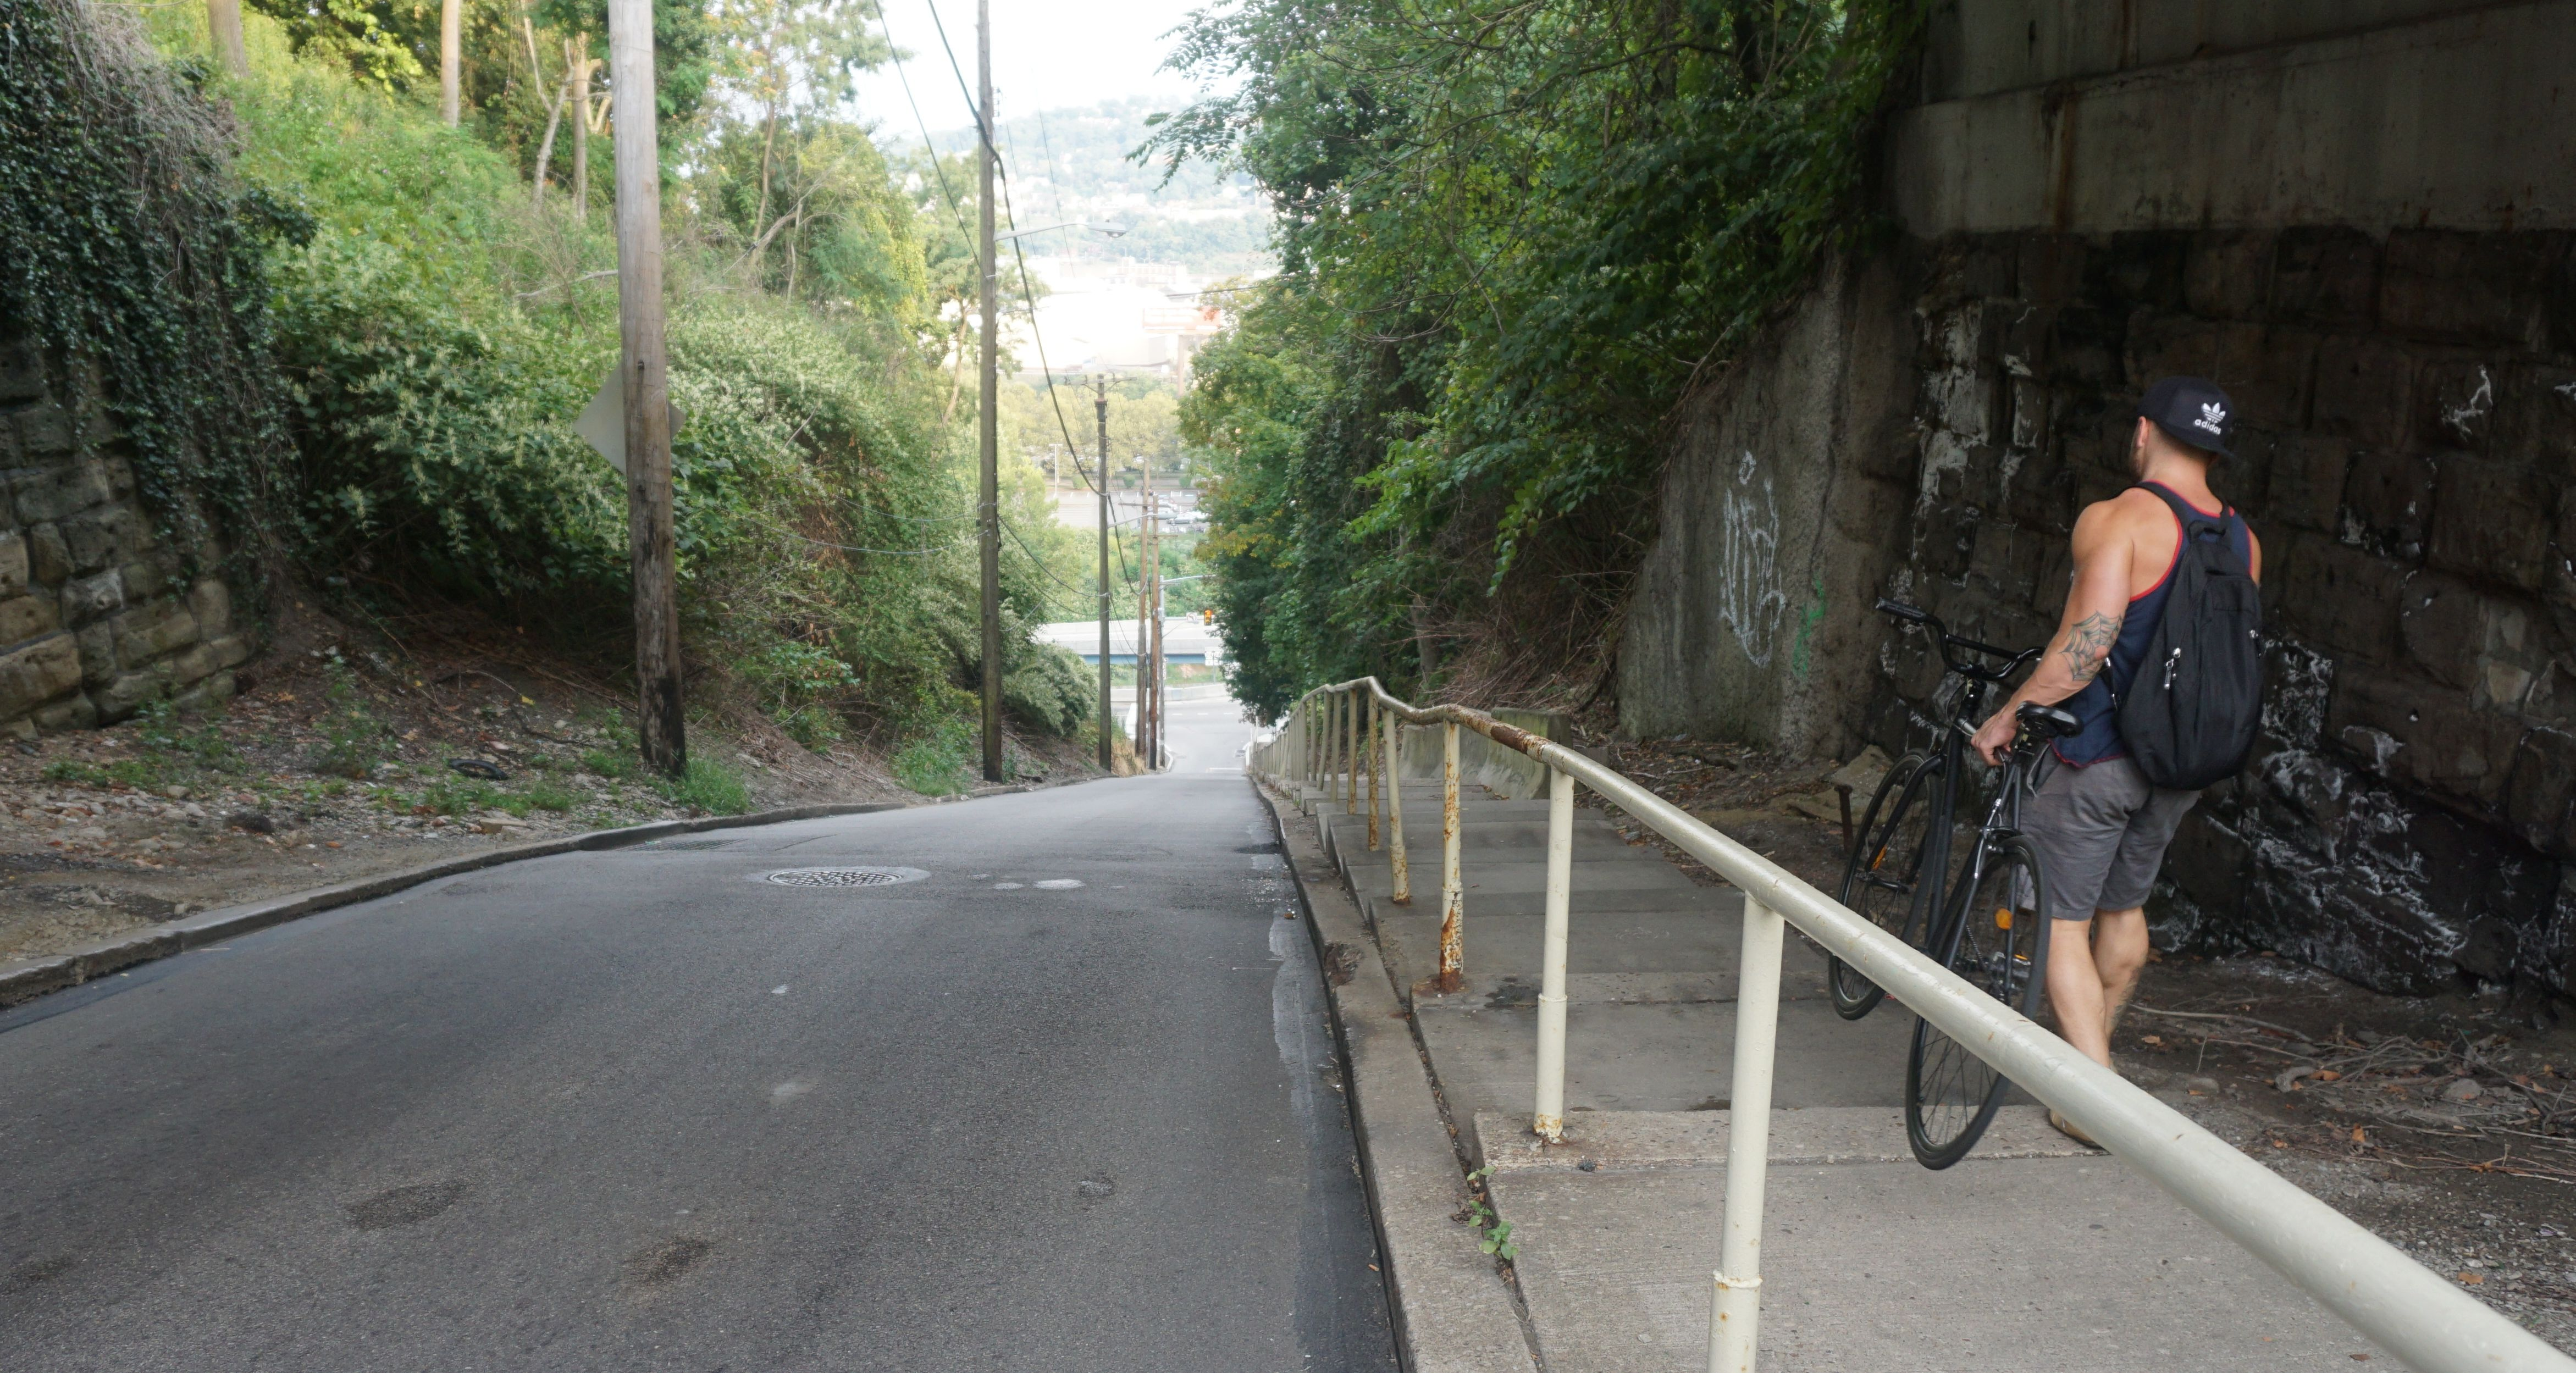 The famous Rialto St., one of the steepest in Pittsburgh. Photo by TC